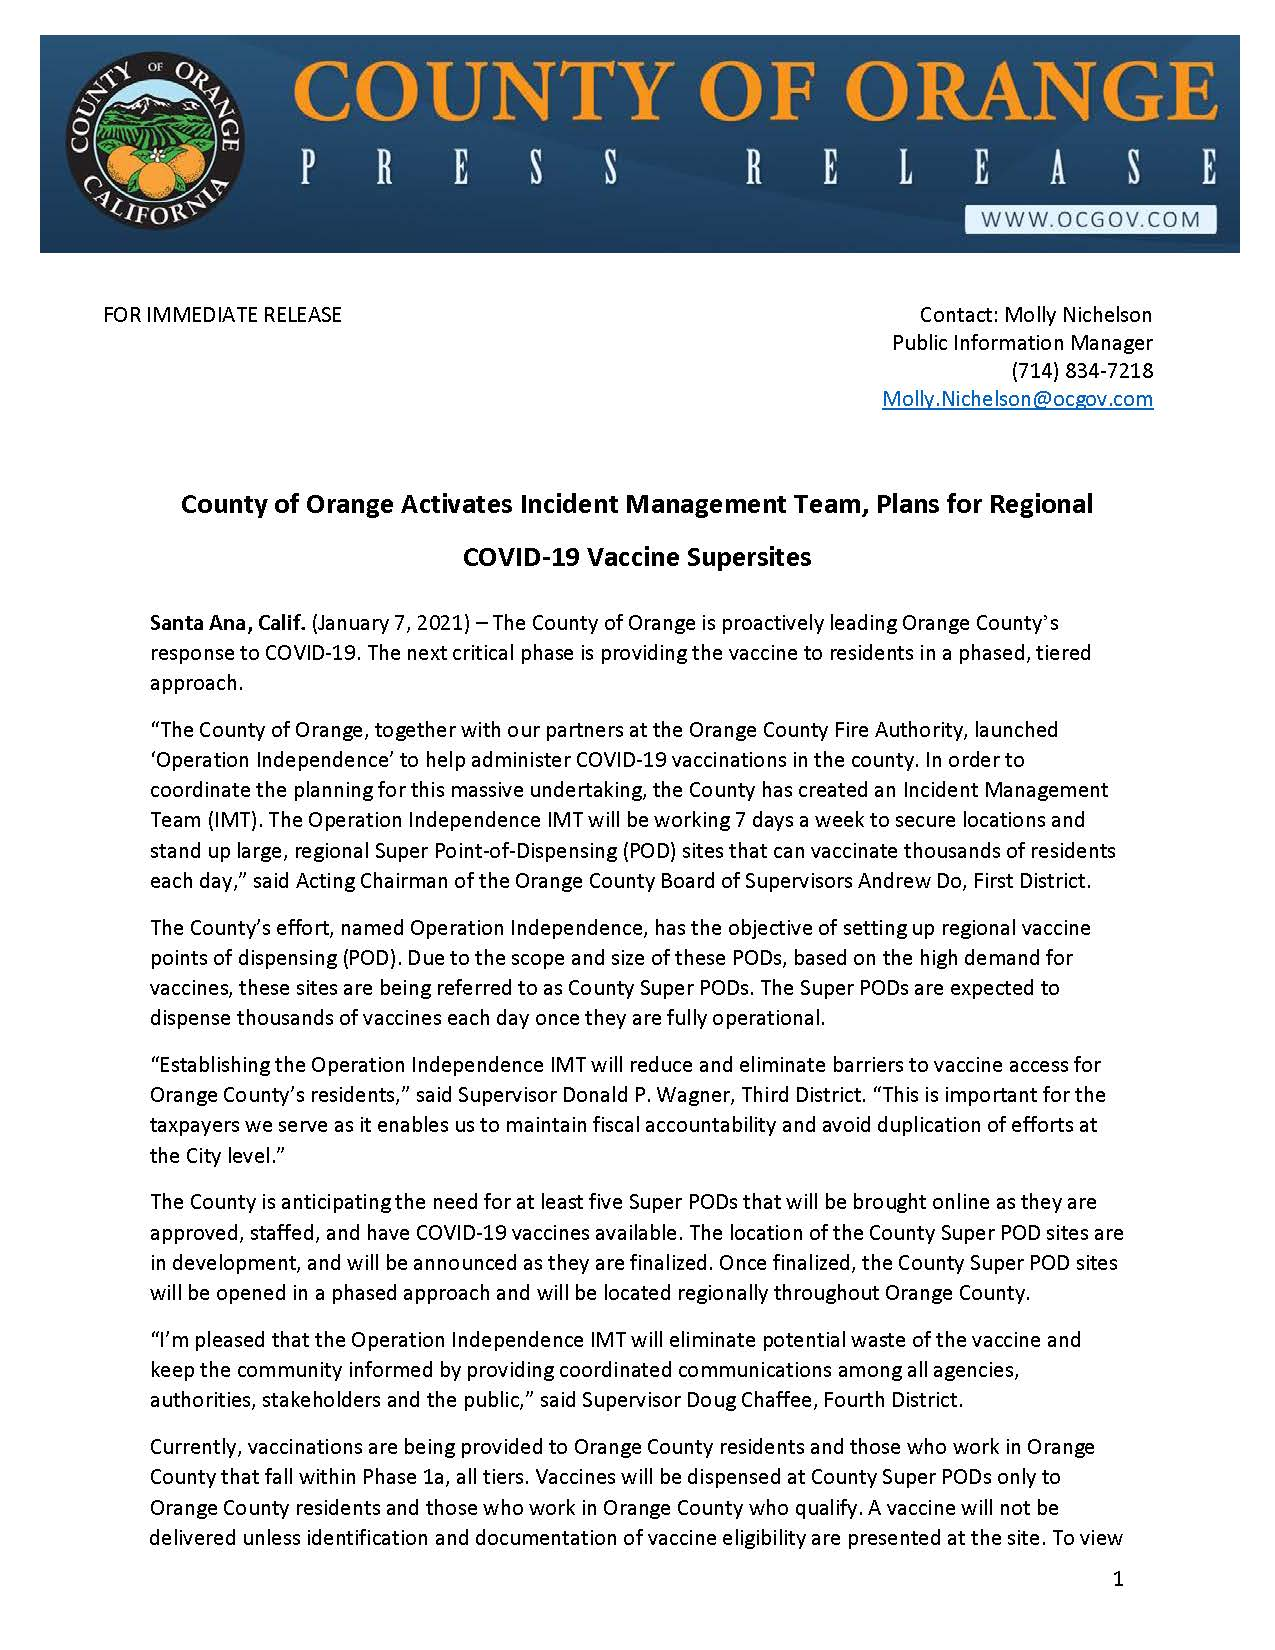 Press Release_County of Orange IMT and Super PODs 1-7-21_Page_1